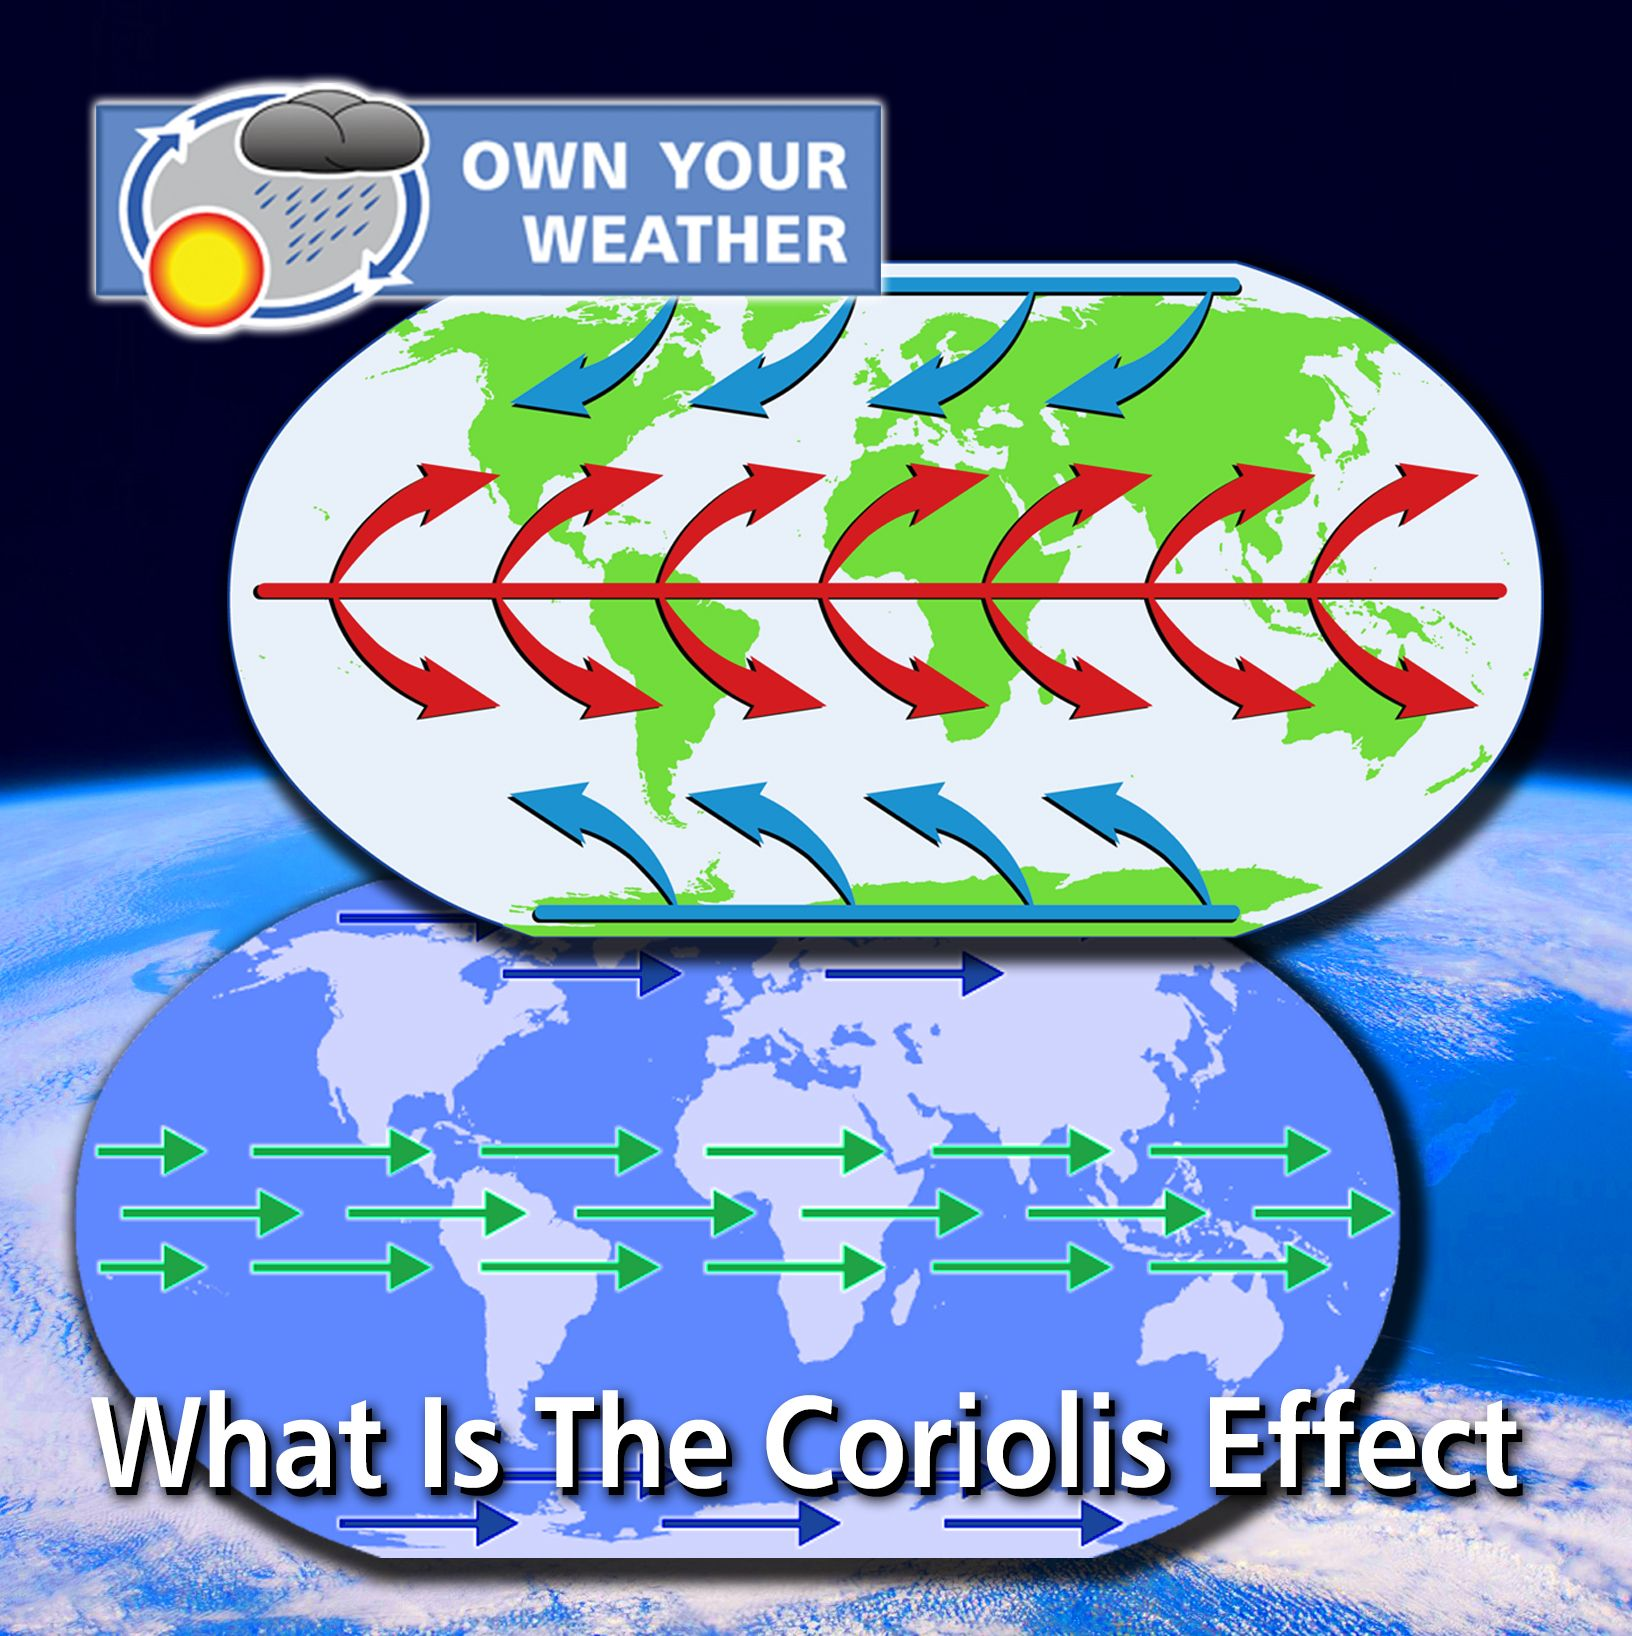 What Is The Coriolis Effect And How Does It Affect Our